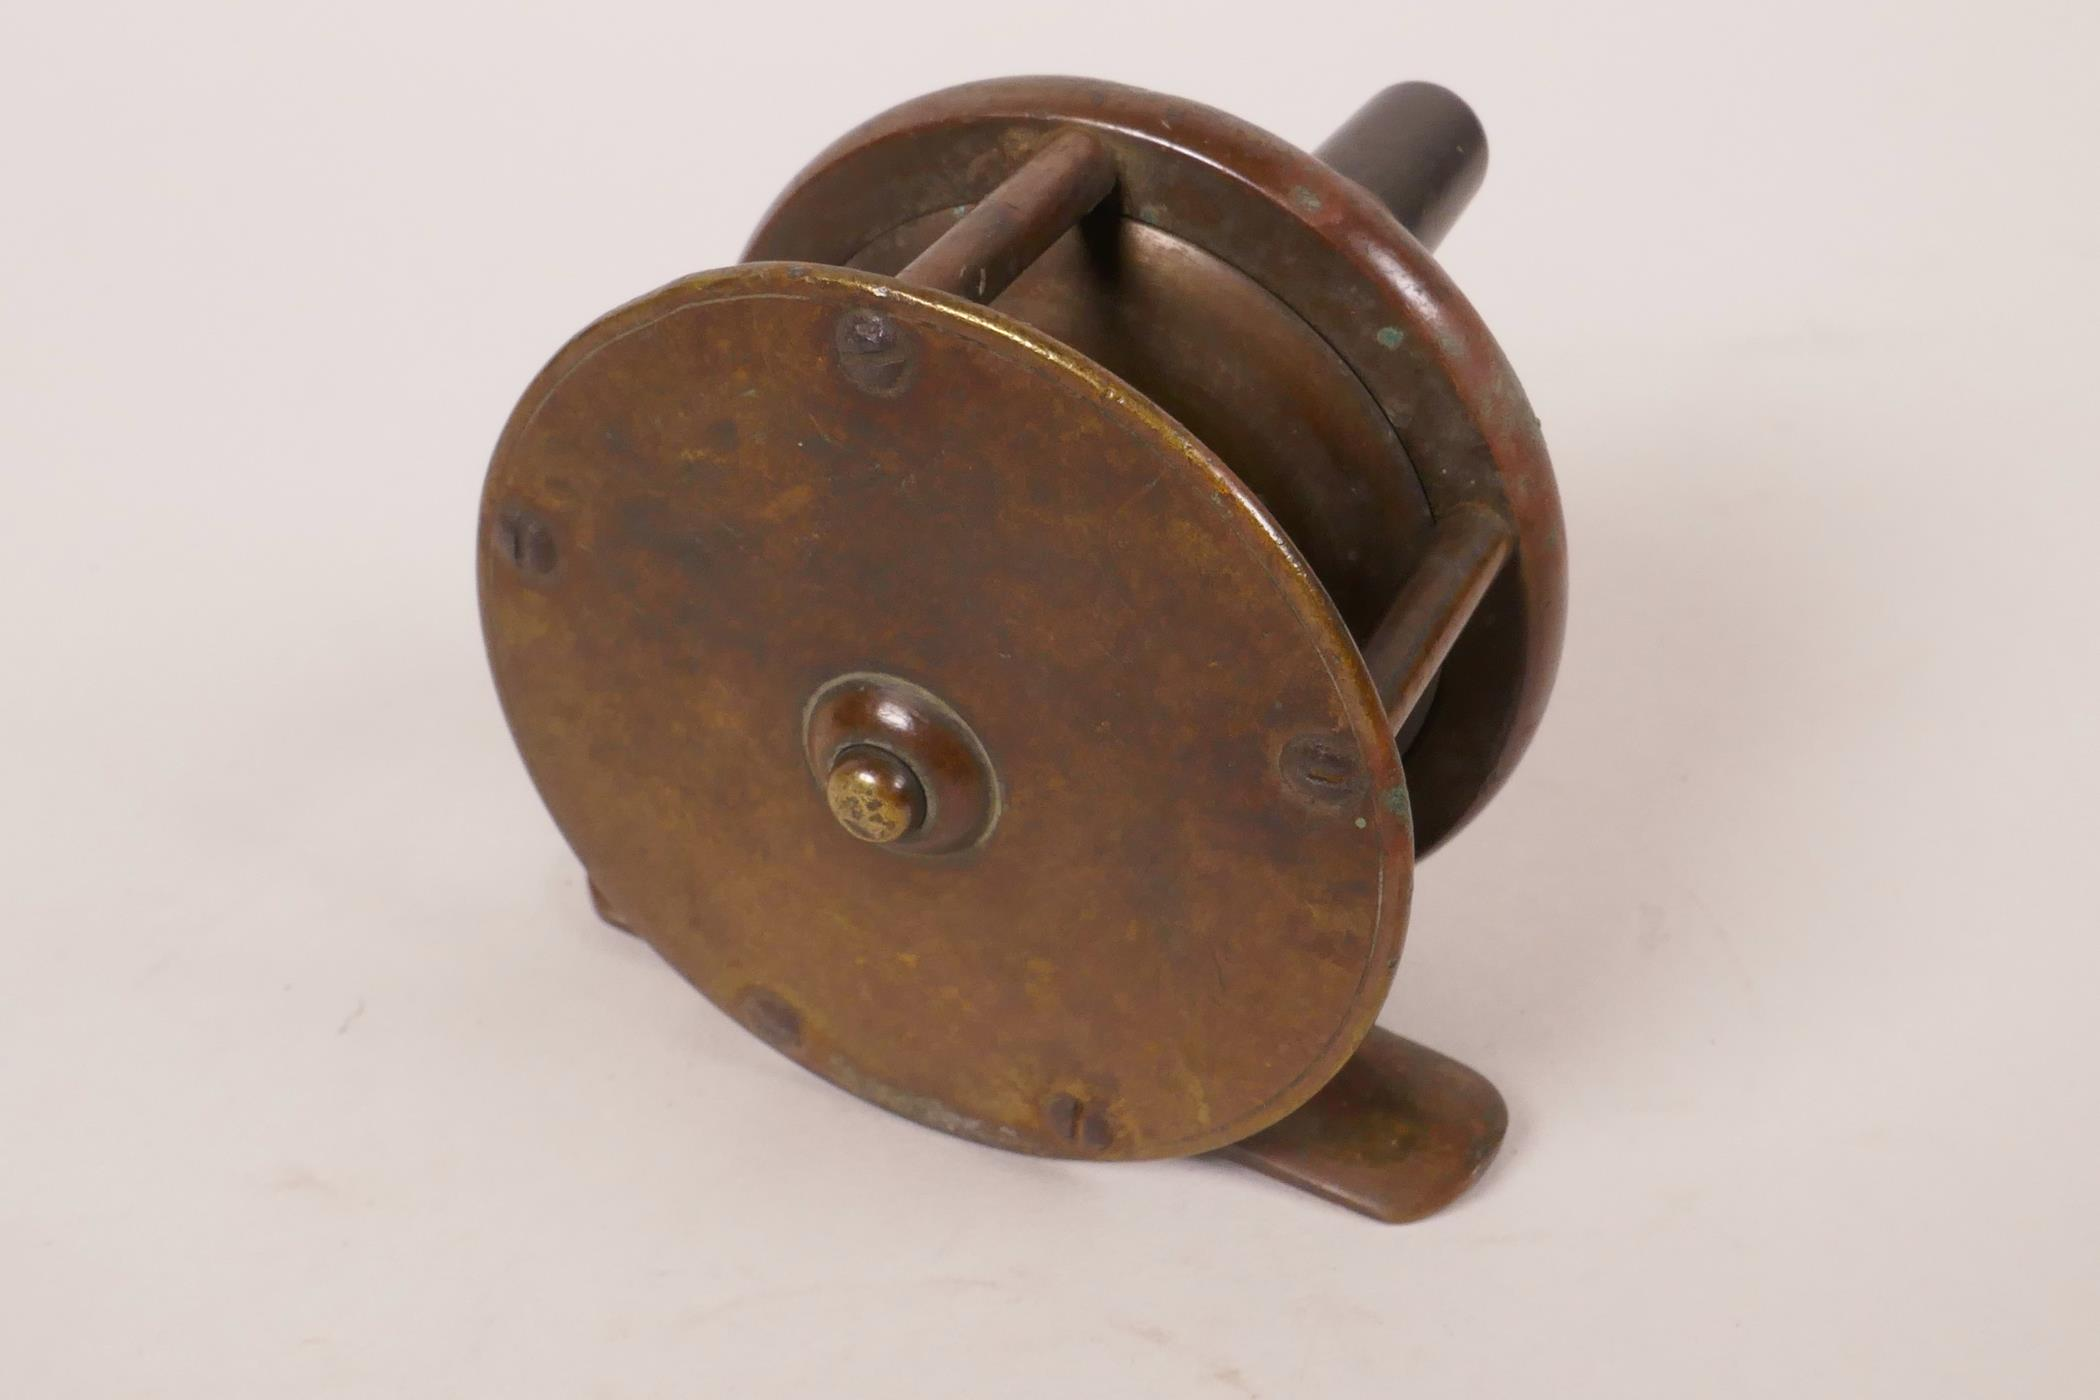 """Lot 25 - A C19th Army and Navy brass trout fishing reel, 2½"""" diameter"""